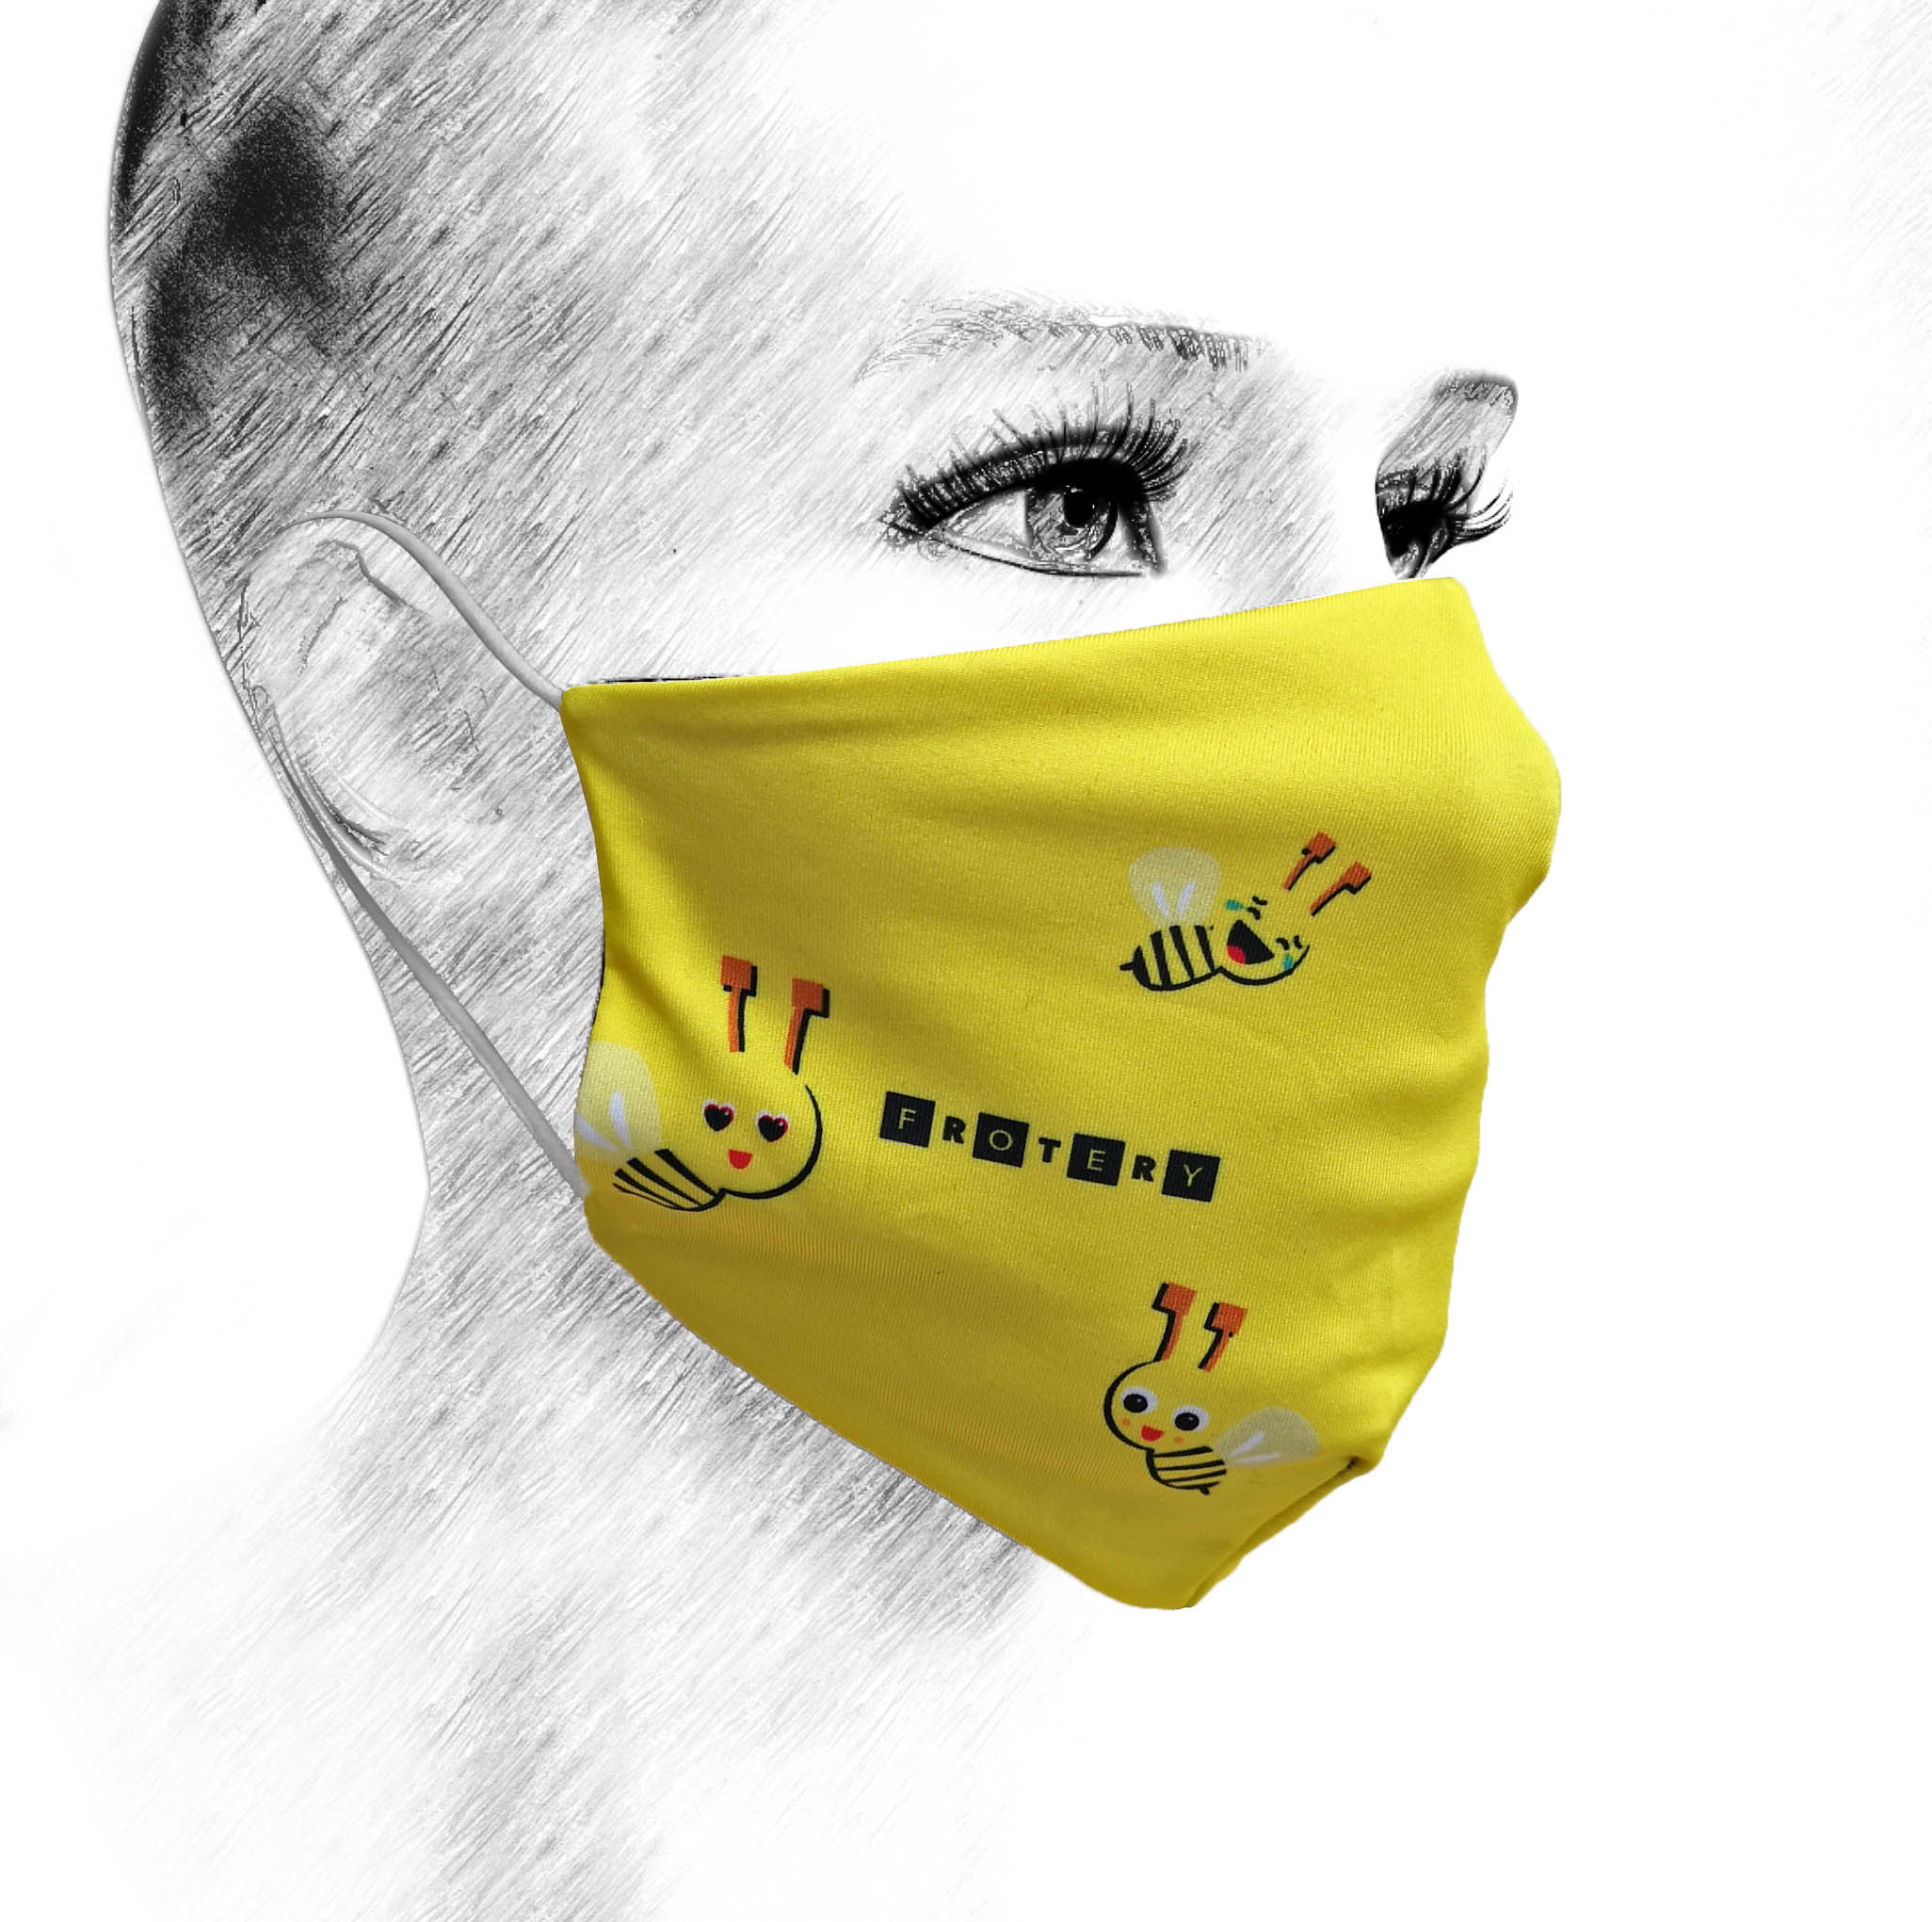 Advertising_mask_Frotery